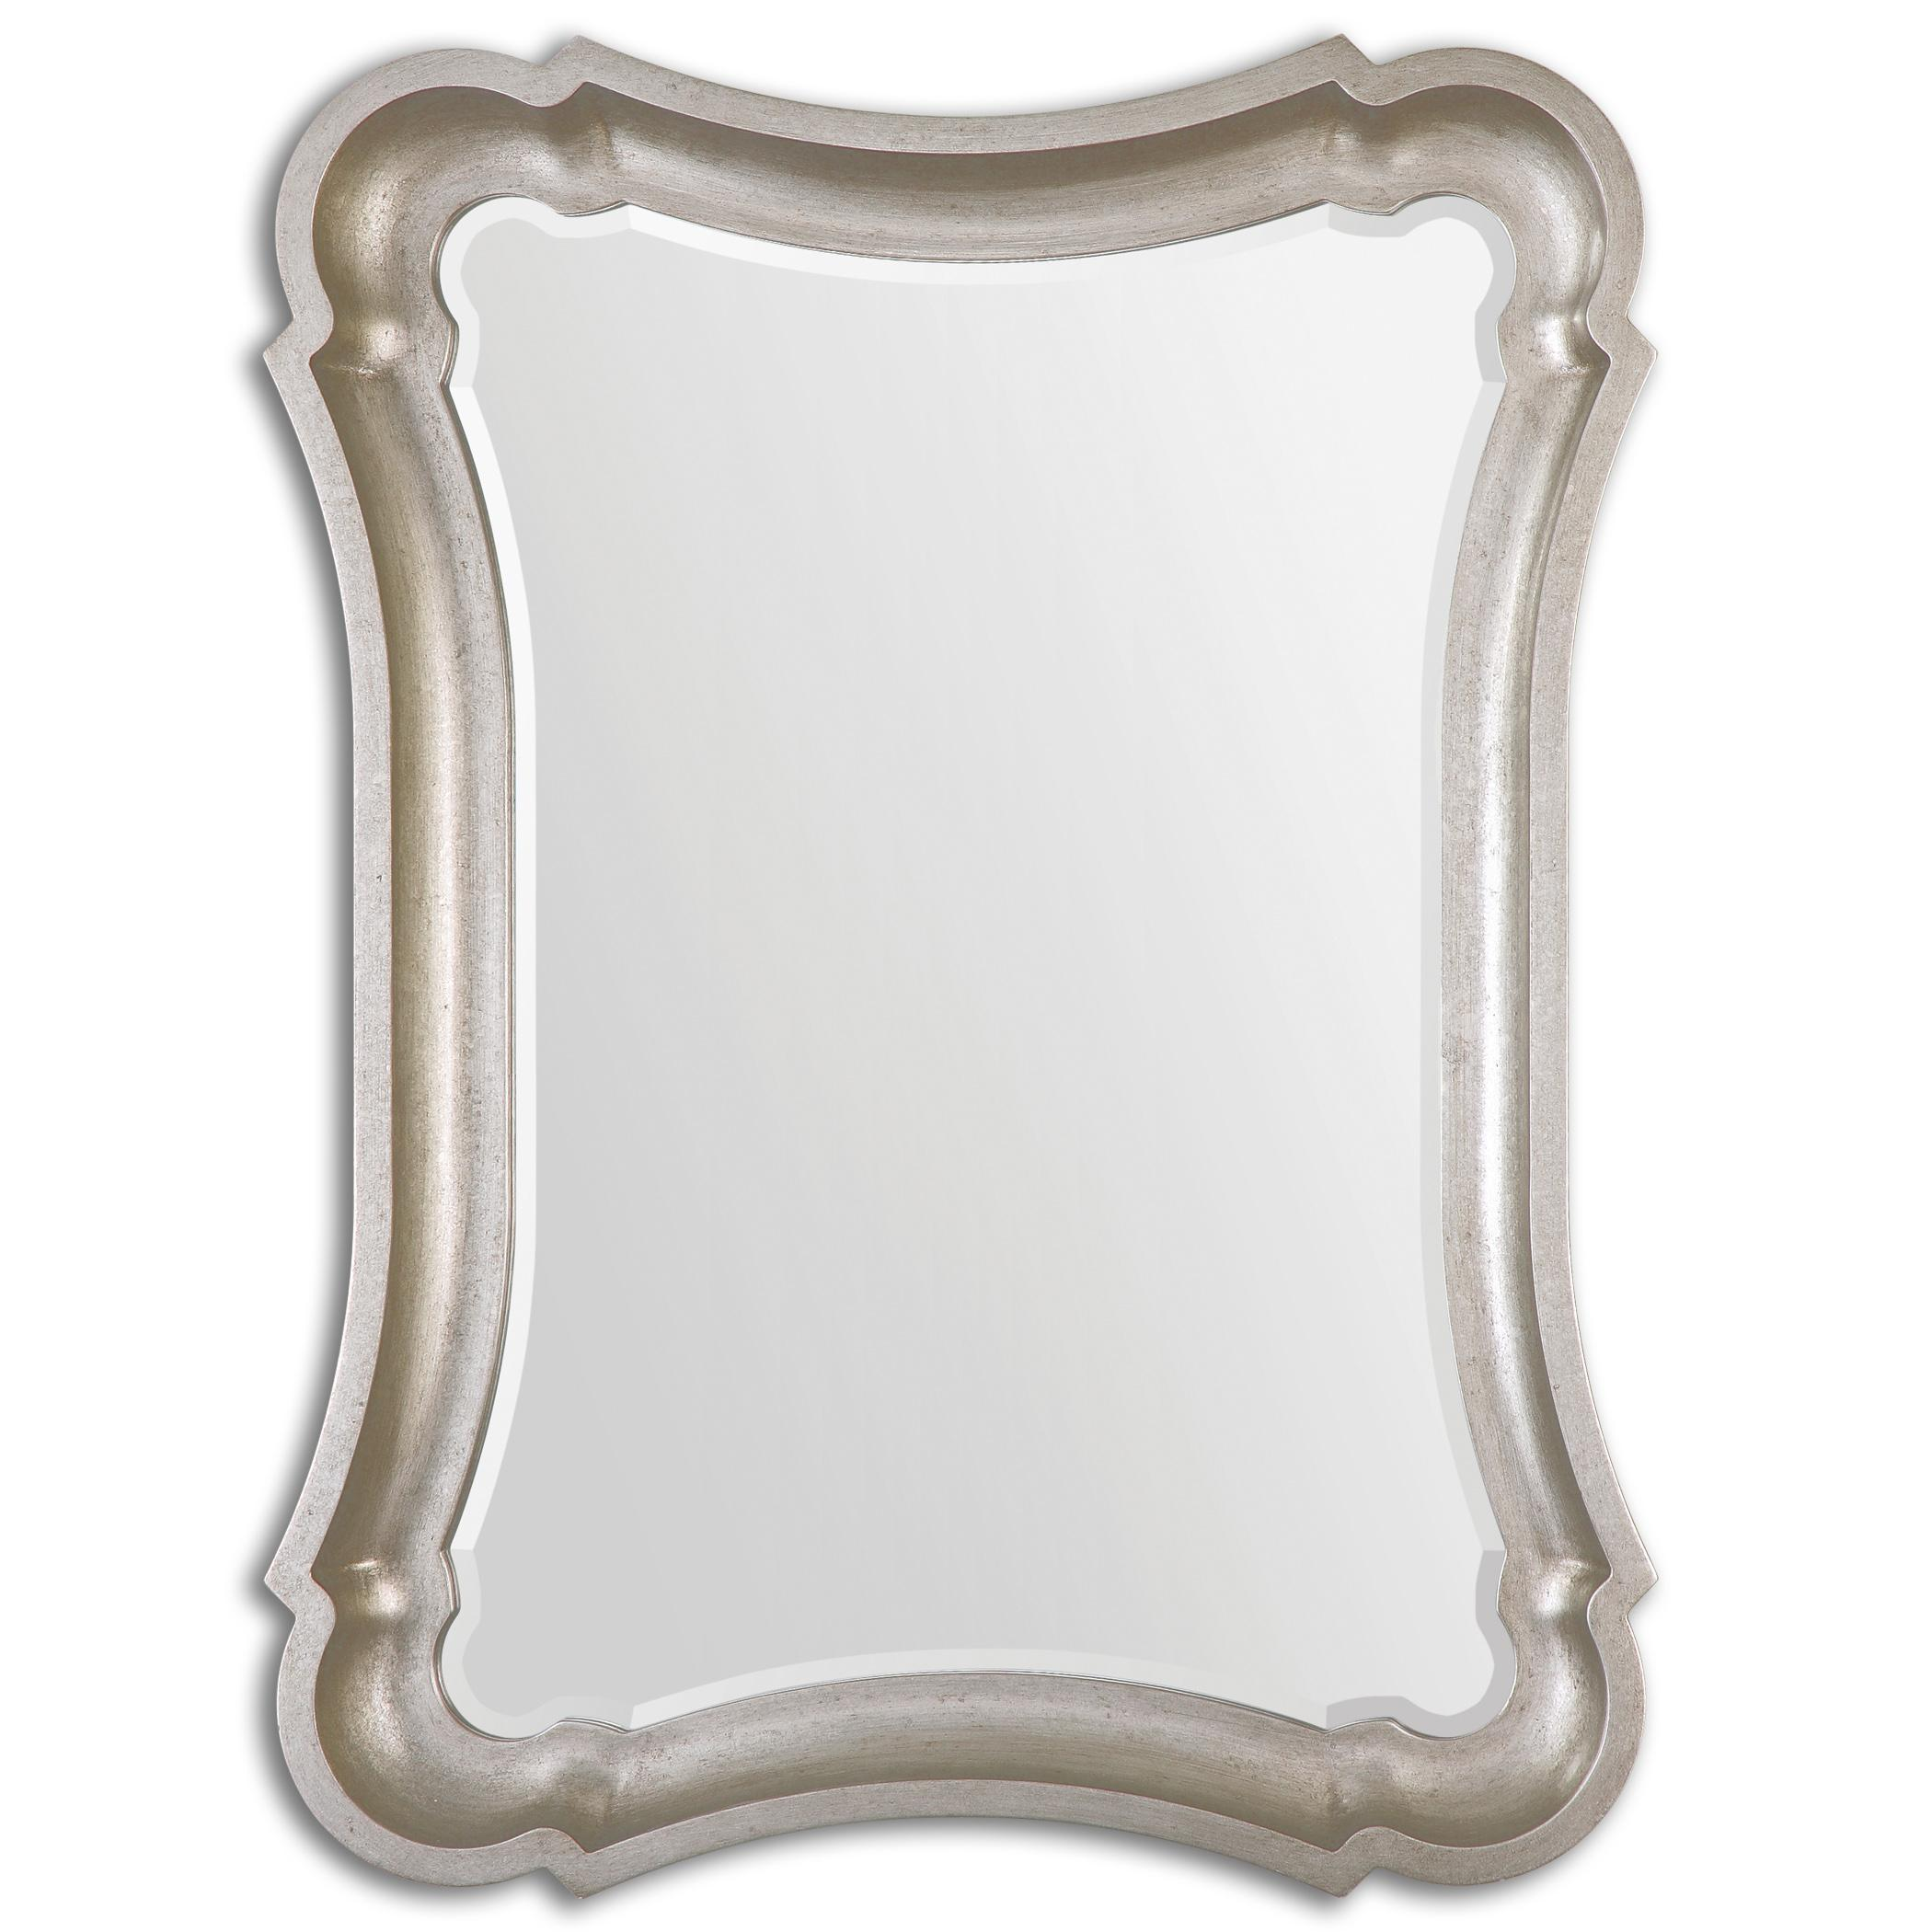 Uttermost Mirrors Anatolius Silver Leaf Mirror - Item Number: 14543